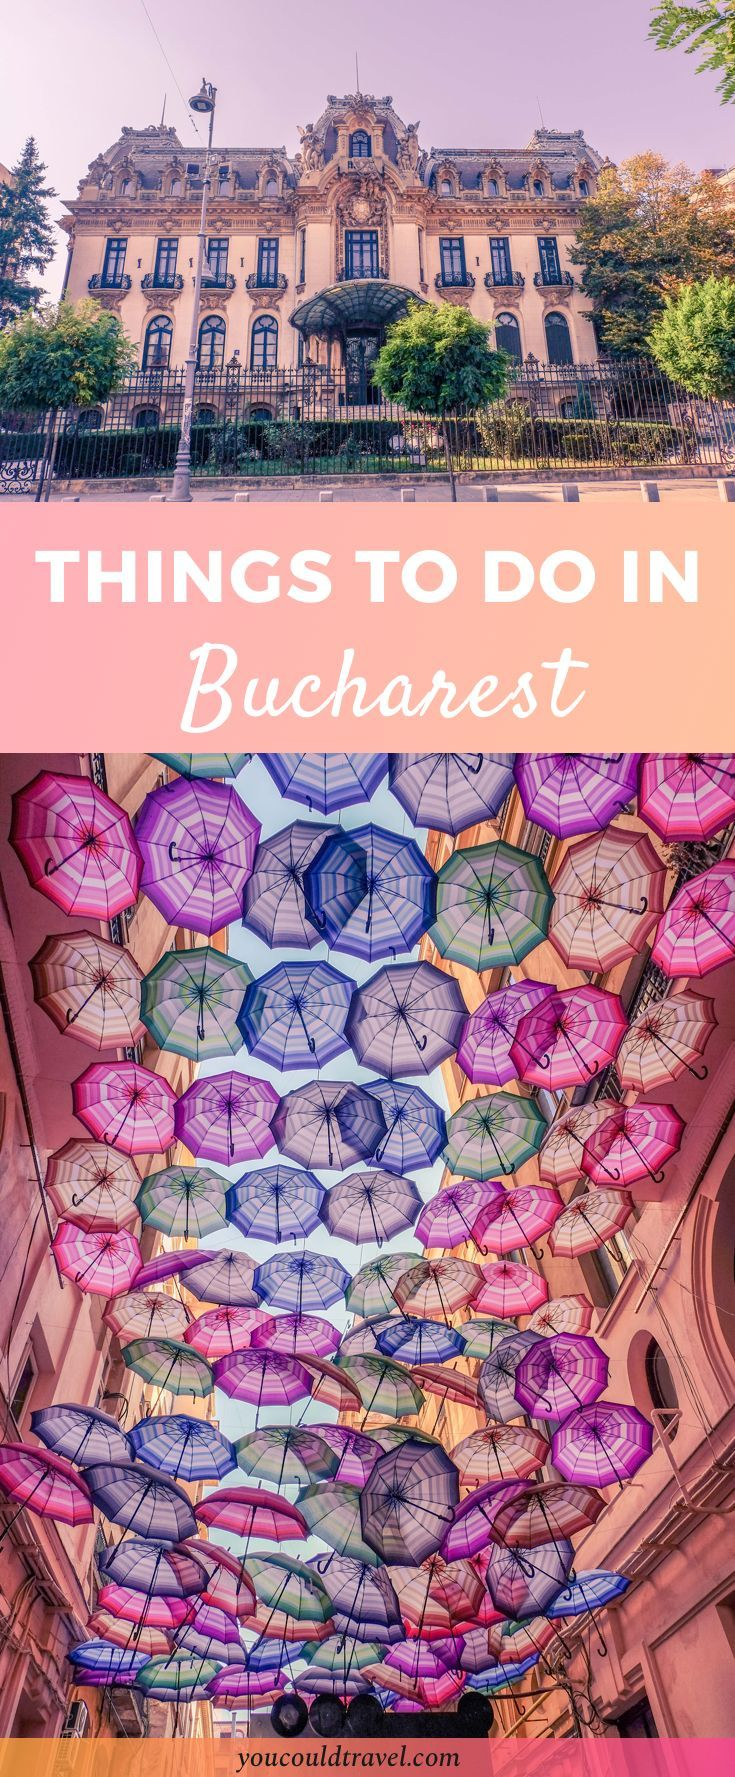 Things to do in Bucharest - What is the first thought that comes to mind when you imagine things to do in Bucharest? Movies certainly portray the Romanian capital as an endless sea of grey concrete blocks, a post-communist country with bad music and angry people. #bucharest #guide #romania